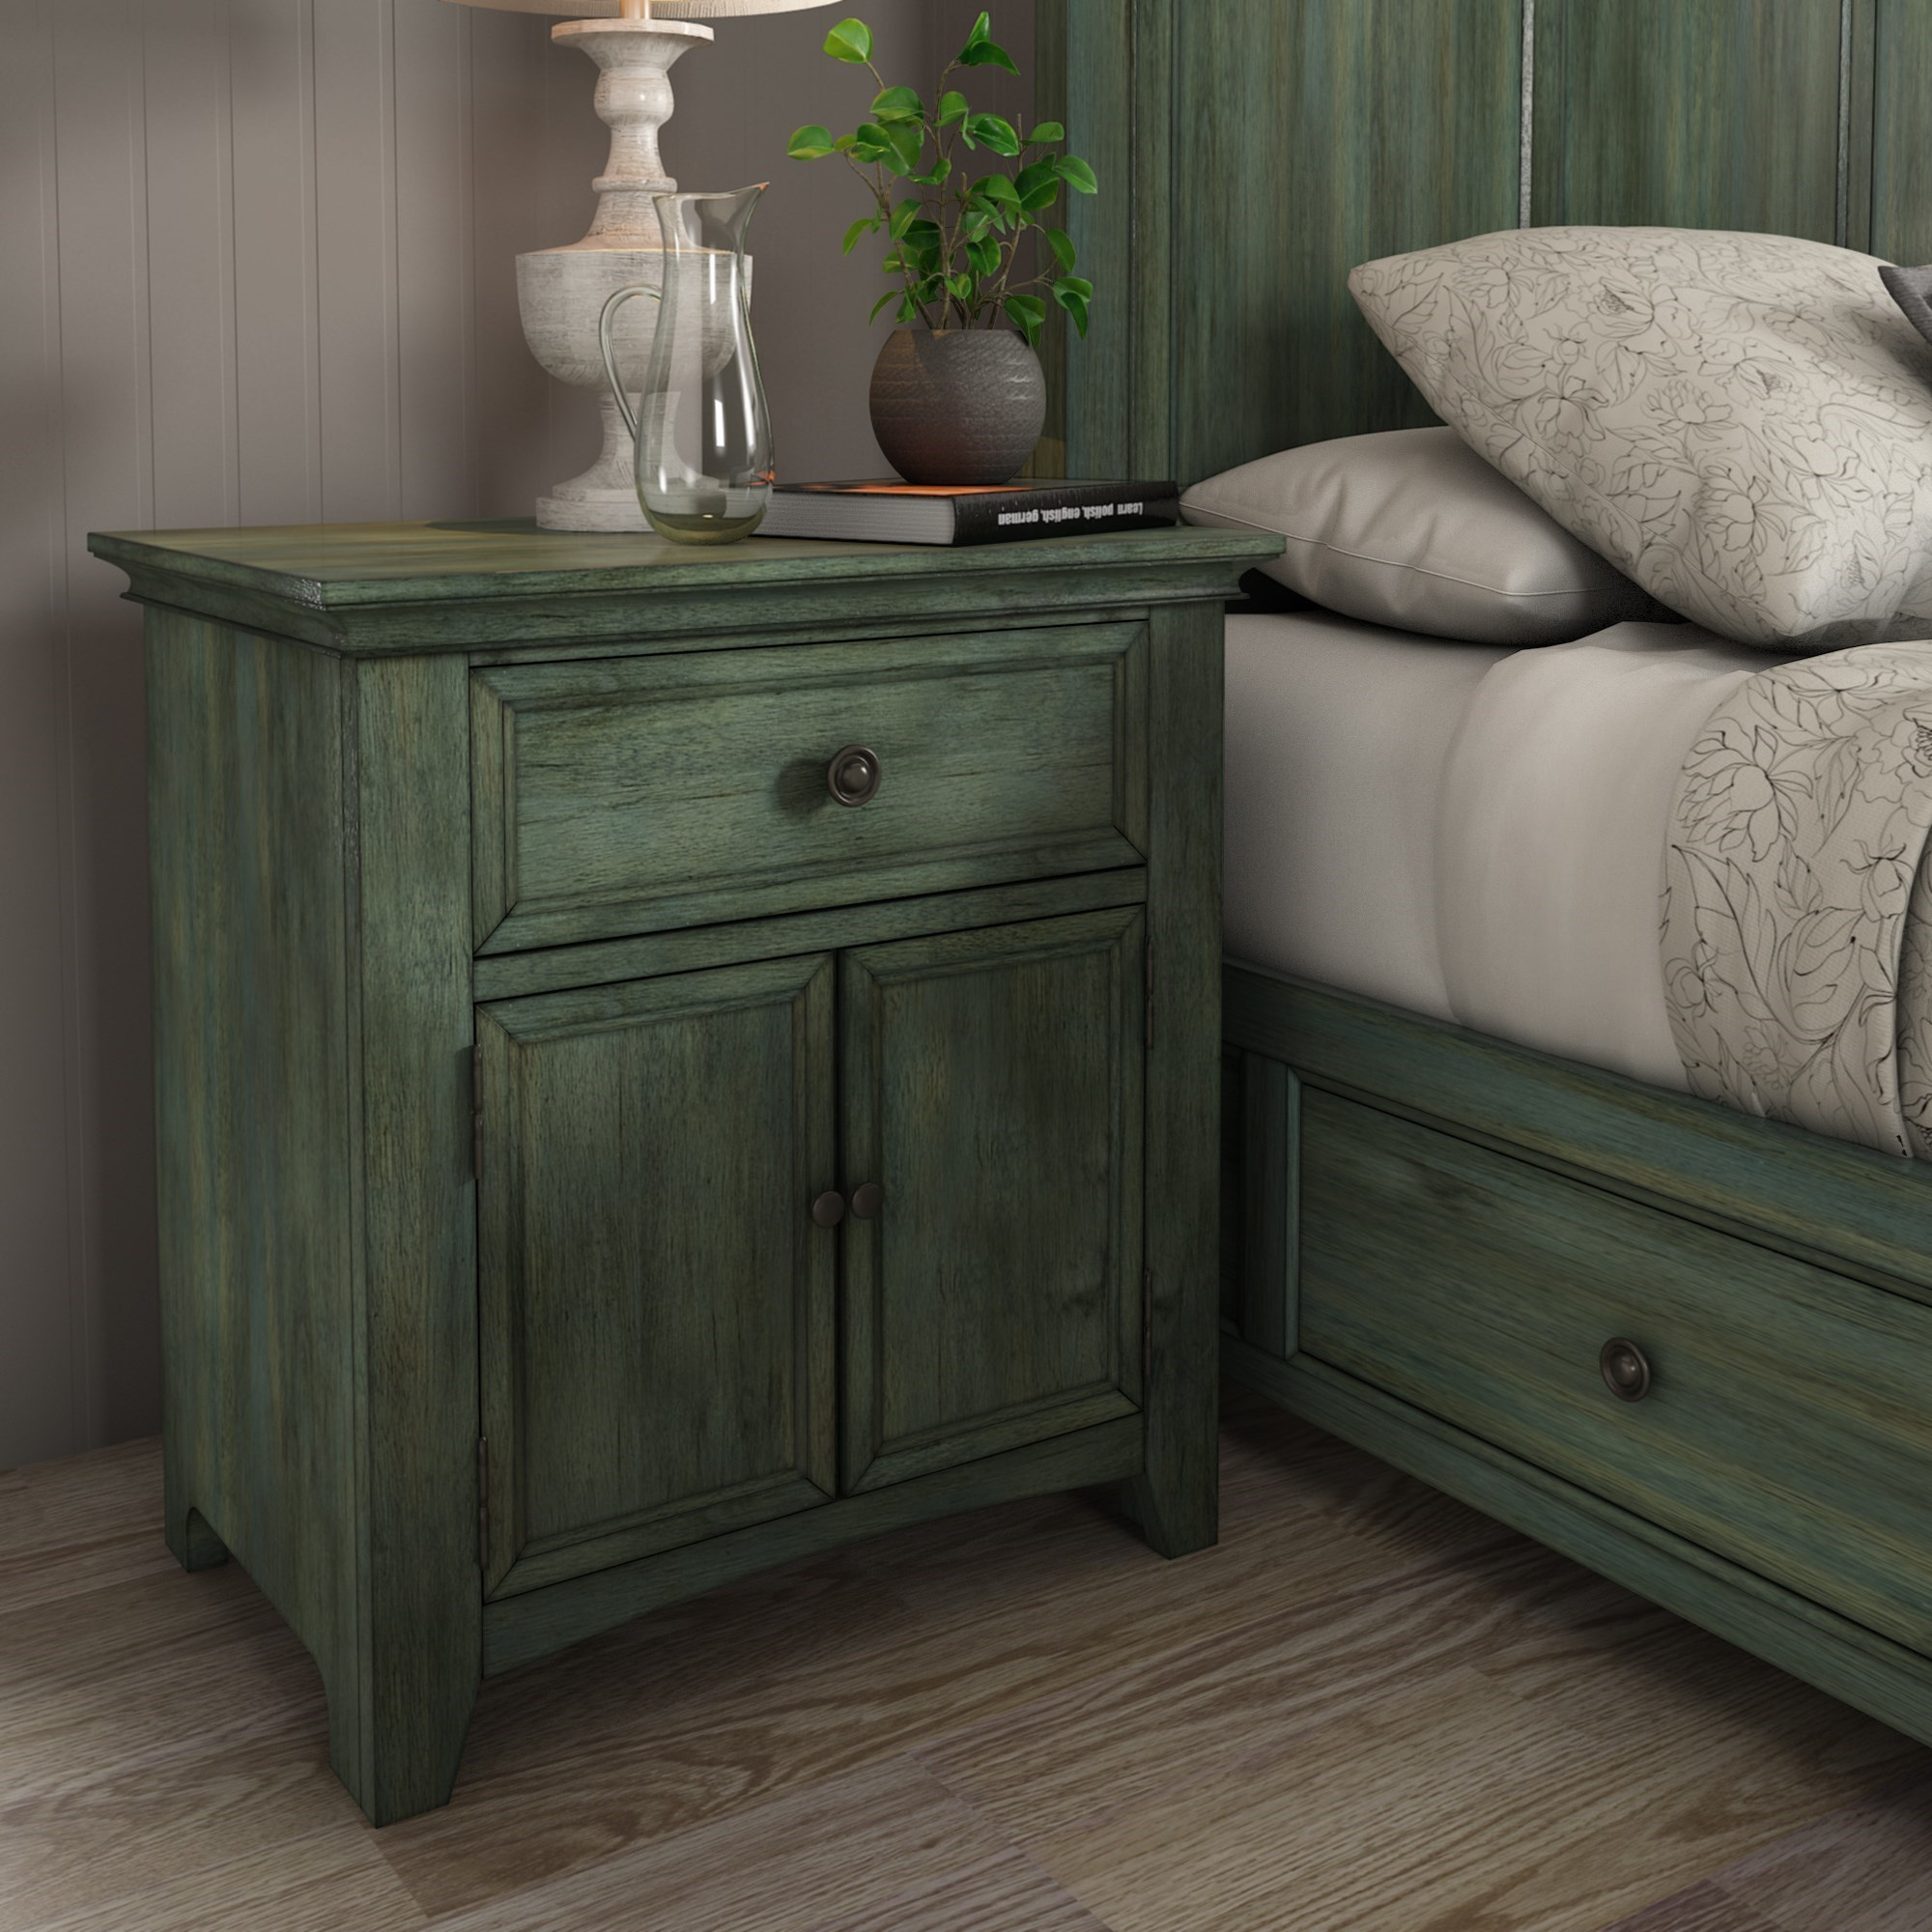 Homelegance 395 Night Stand - Item Number: 395B-C4AQ